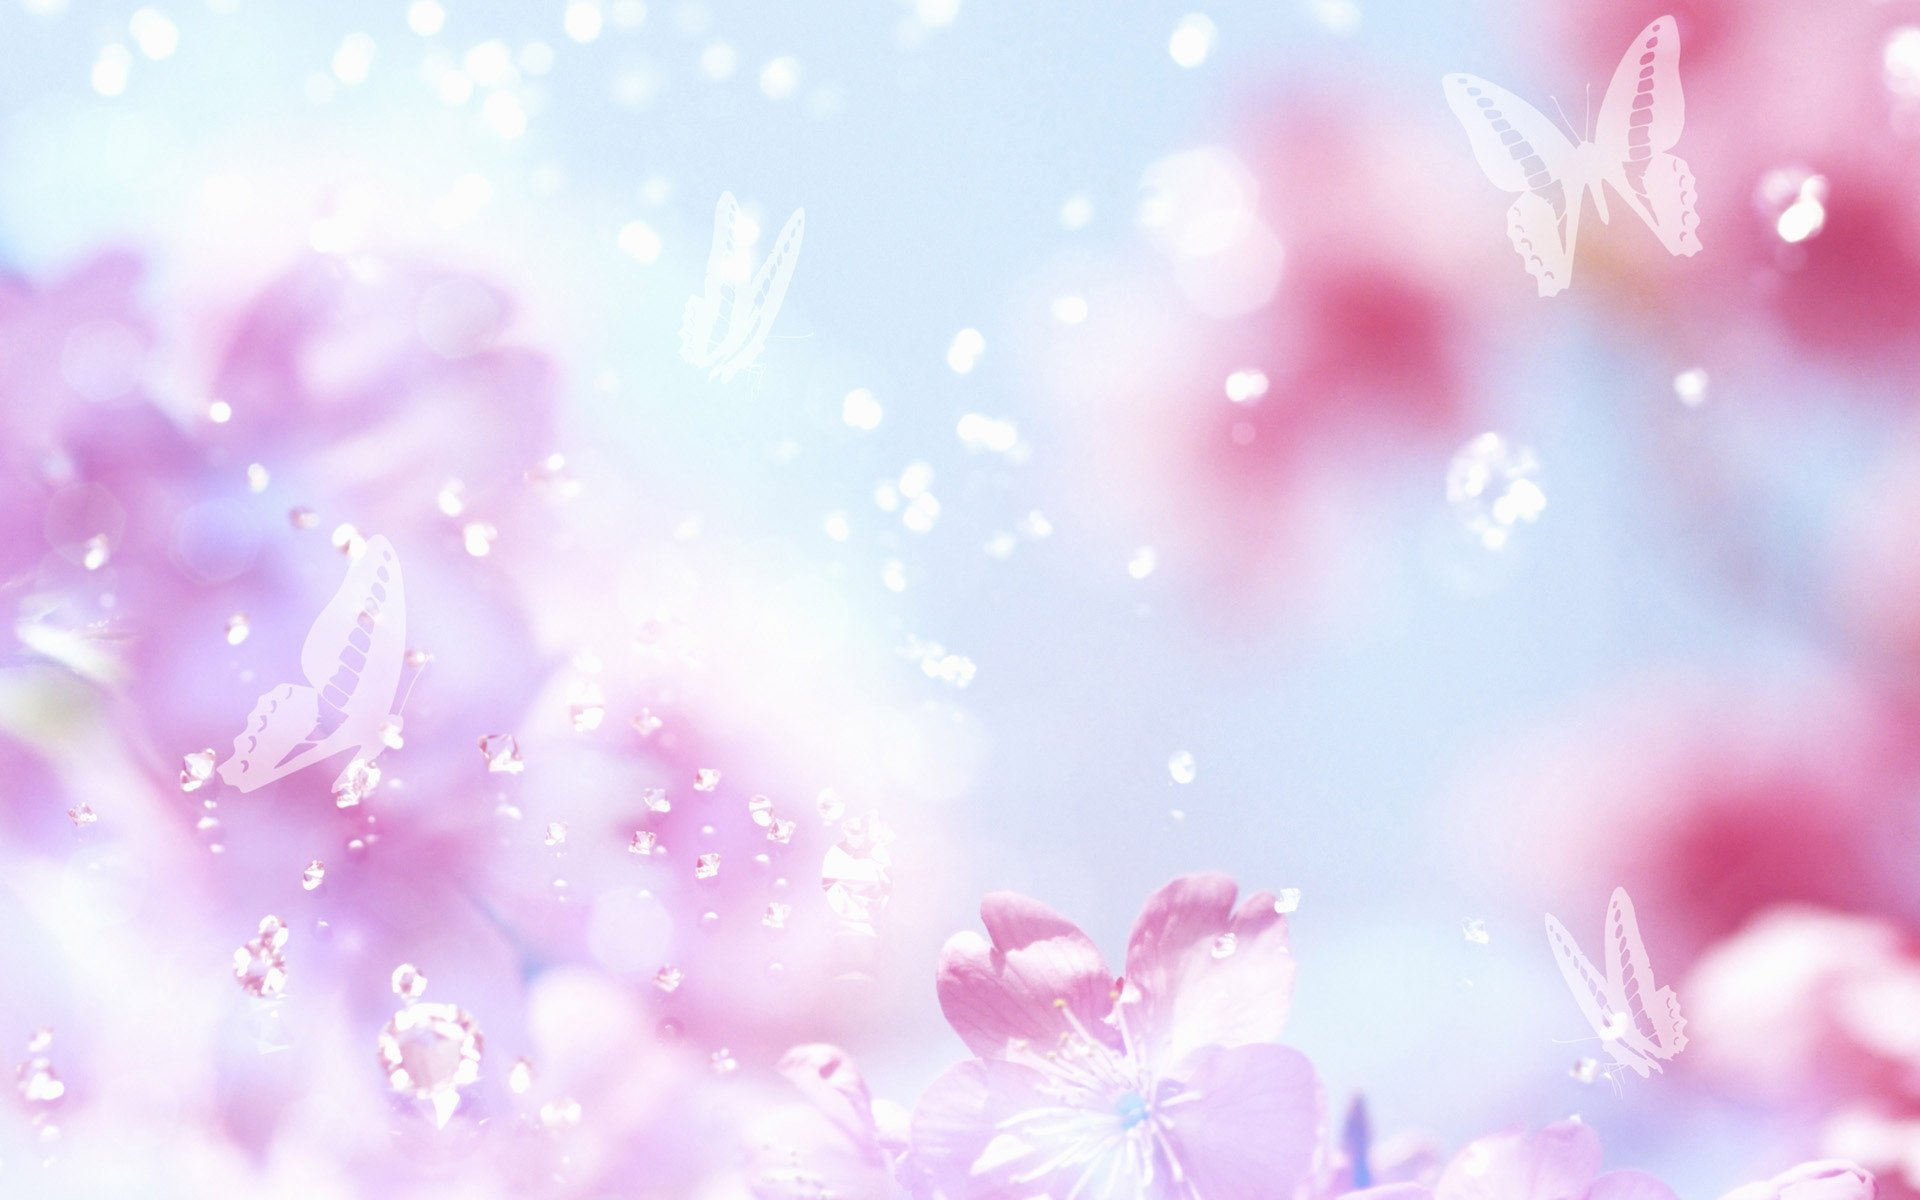 Pretty Wallpapers Hd Pretty Background 158222 Hd Wallpaper Backgrounds Download